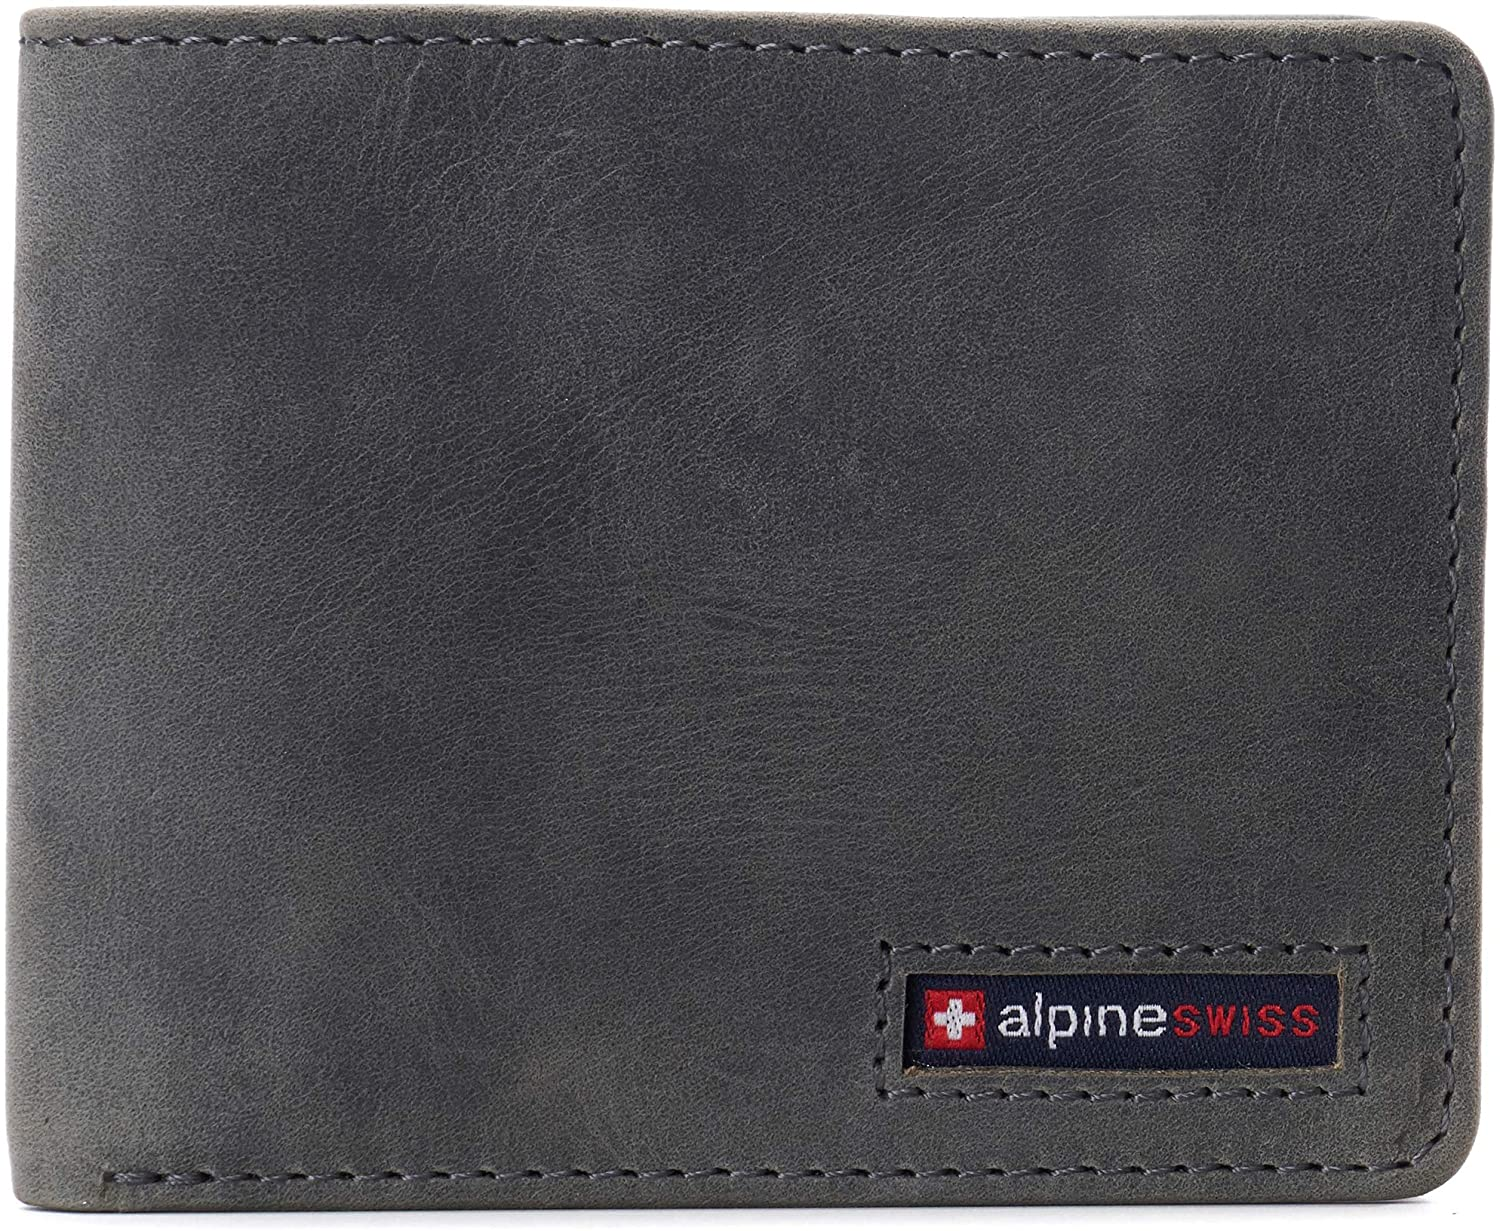 Alpine Swiss Mens RFID Safe Wallet Bifold Passcase Cowhide Leather Billfold Comes in Gift Box